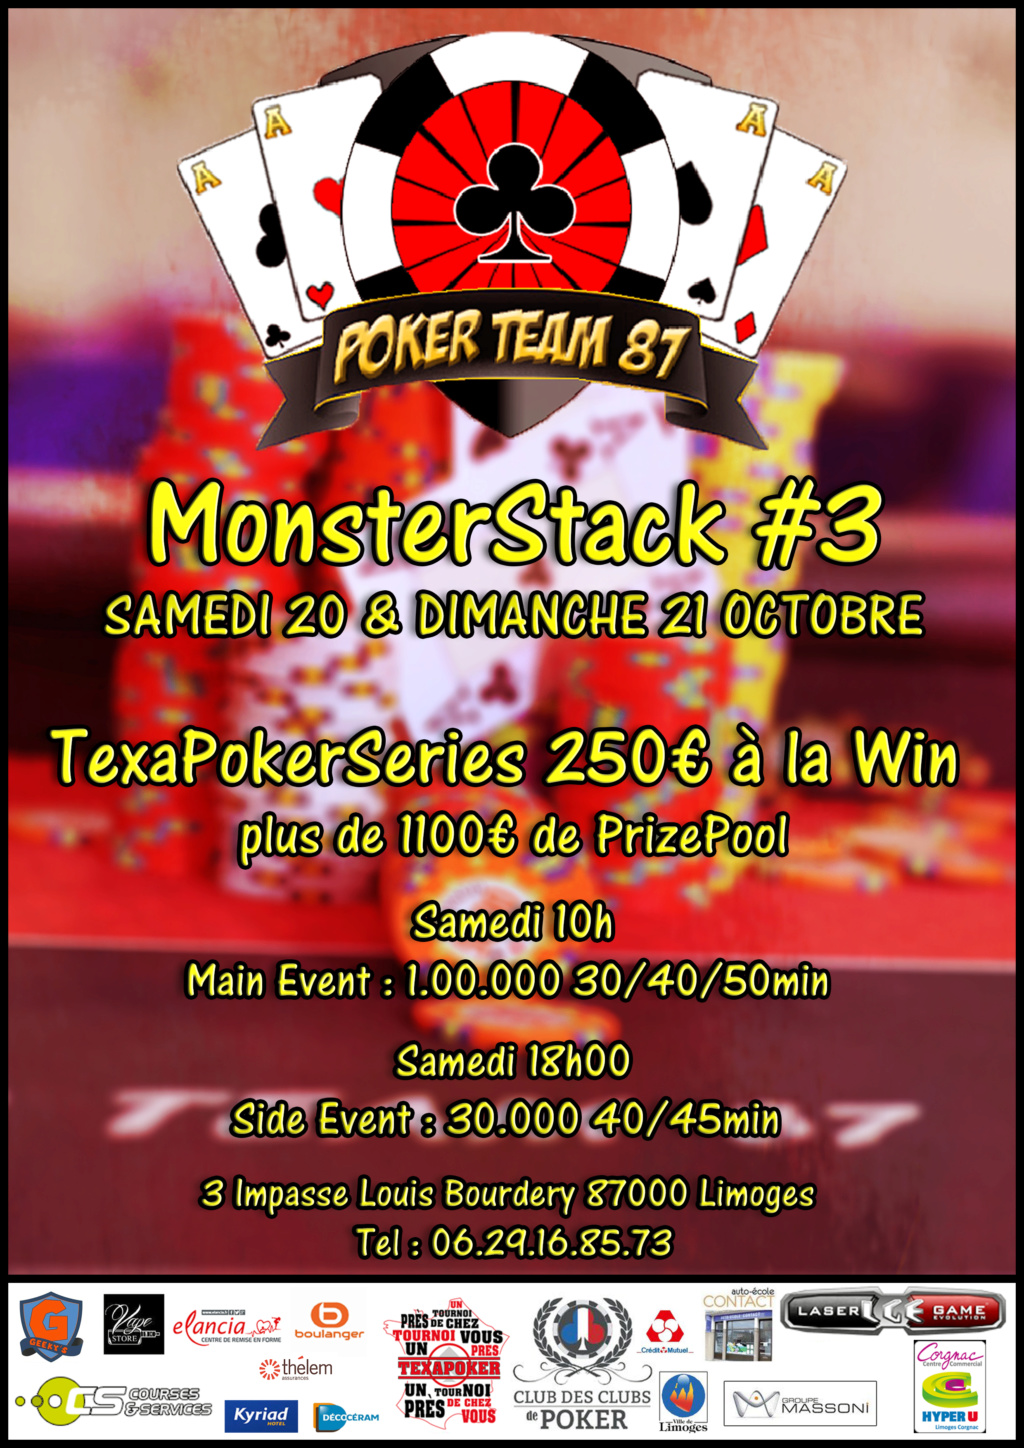 3ème monsterstack Poker Team 87 Monste13